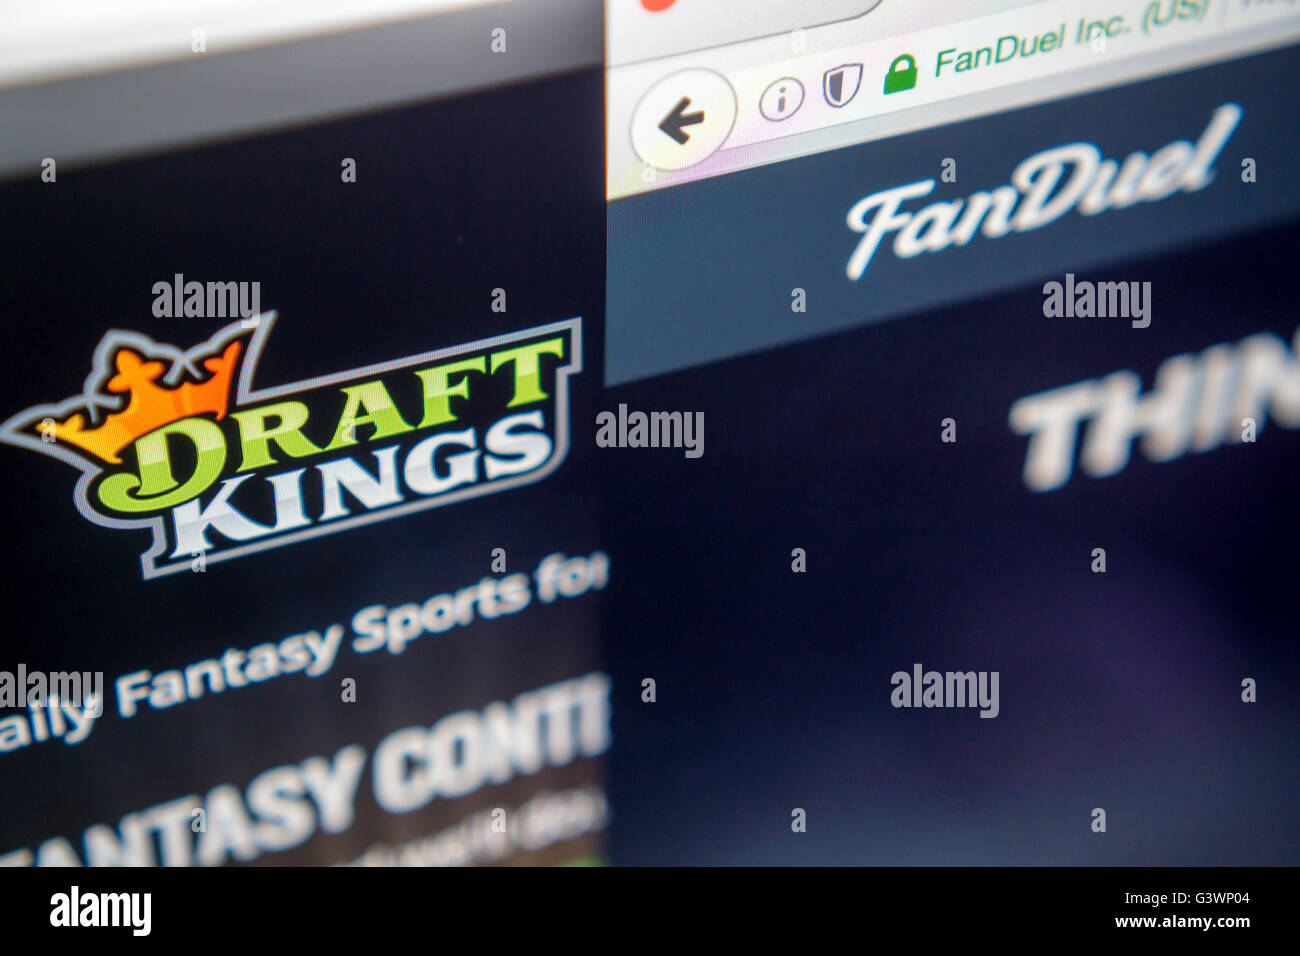 The websites of the fantasy sports sites DraftKings and FanDuel are seen on a computer screen on Tuesday, June 14, - Stock Image